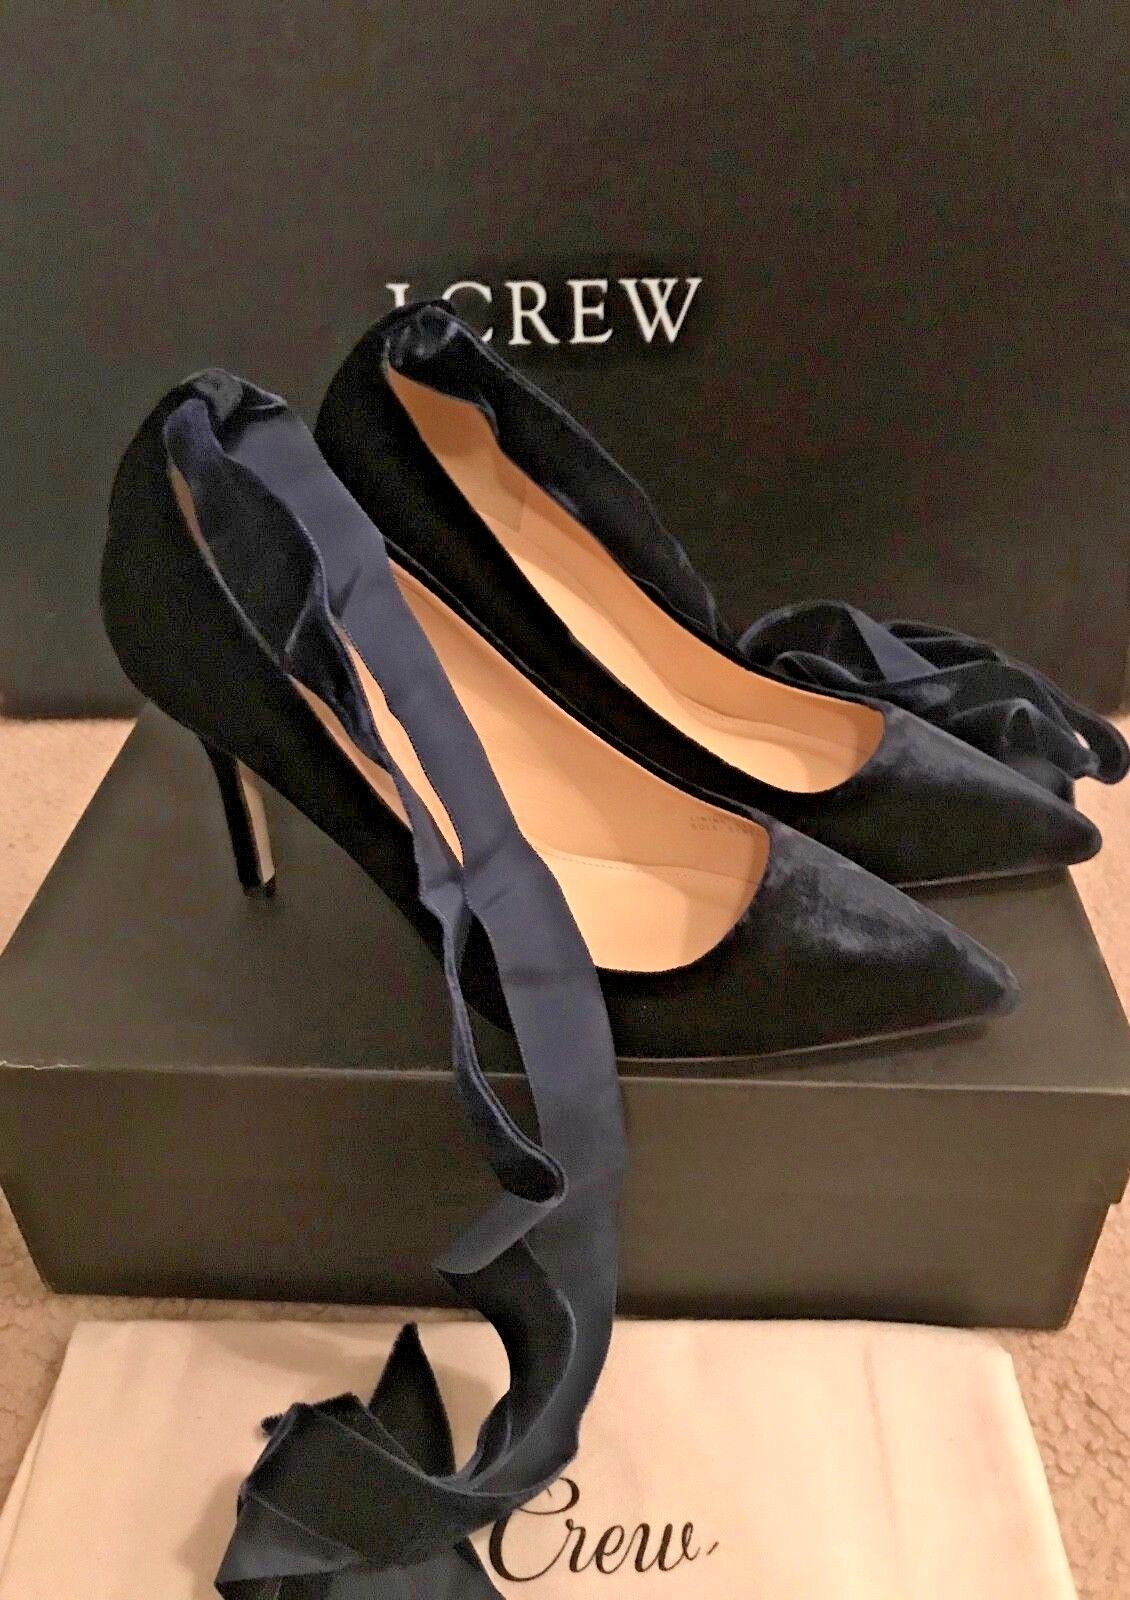 J.CREW ELSIE VELVET ANKLE-WRAP PUMPS SIZE 10,5M DARK PACIFIC G8166